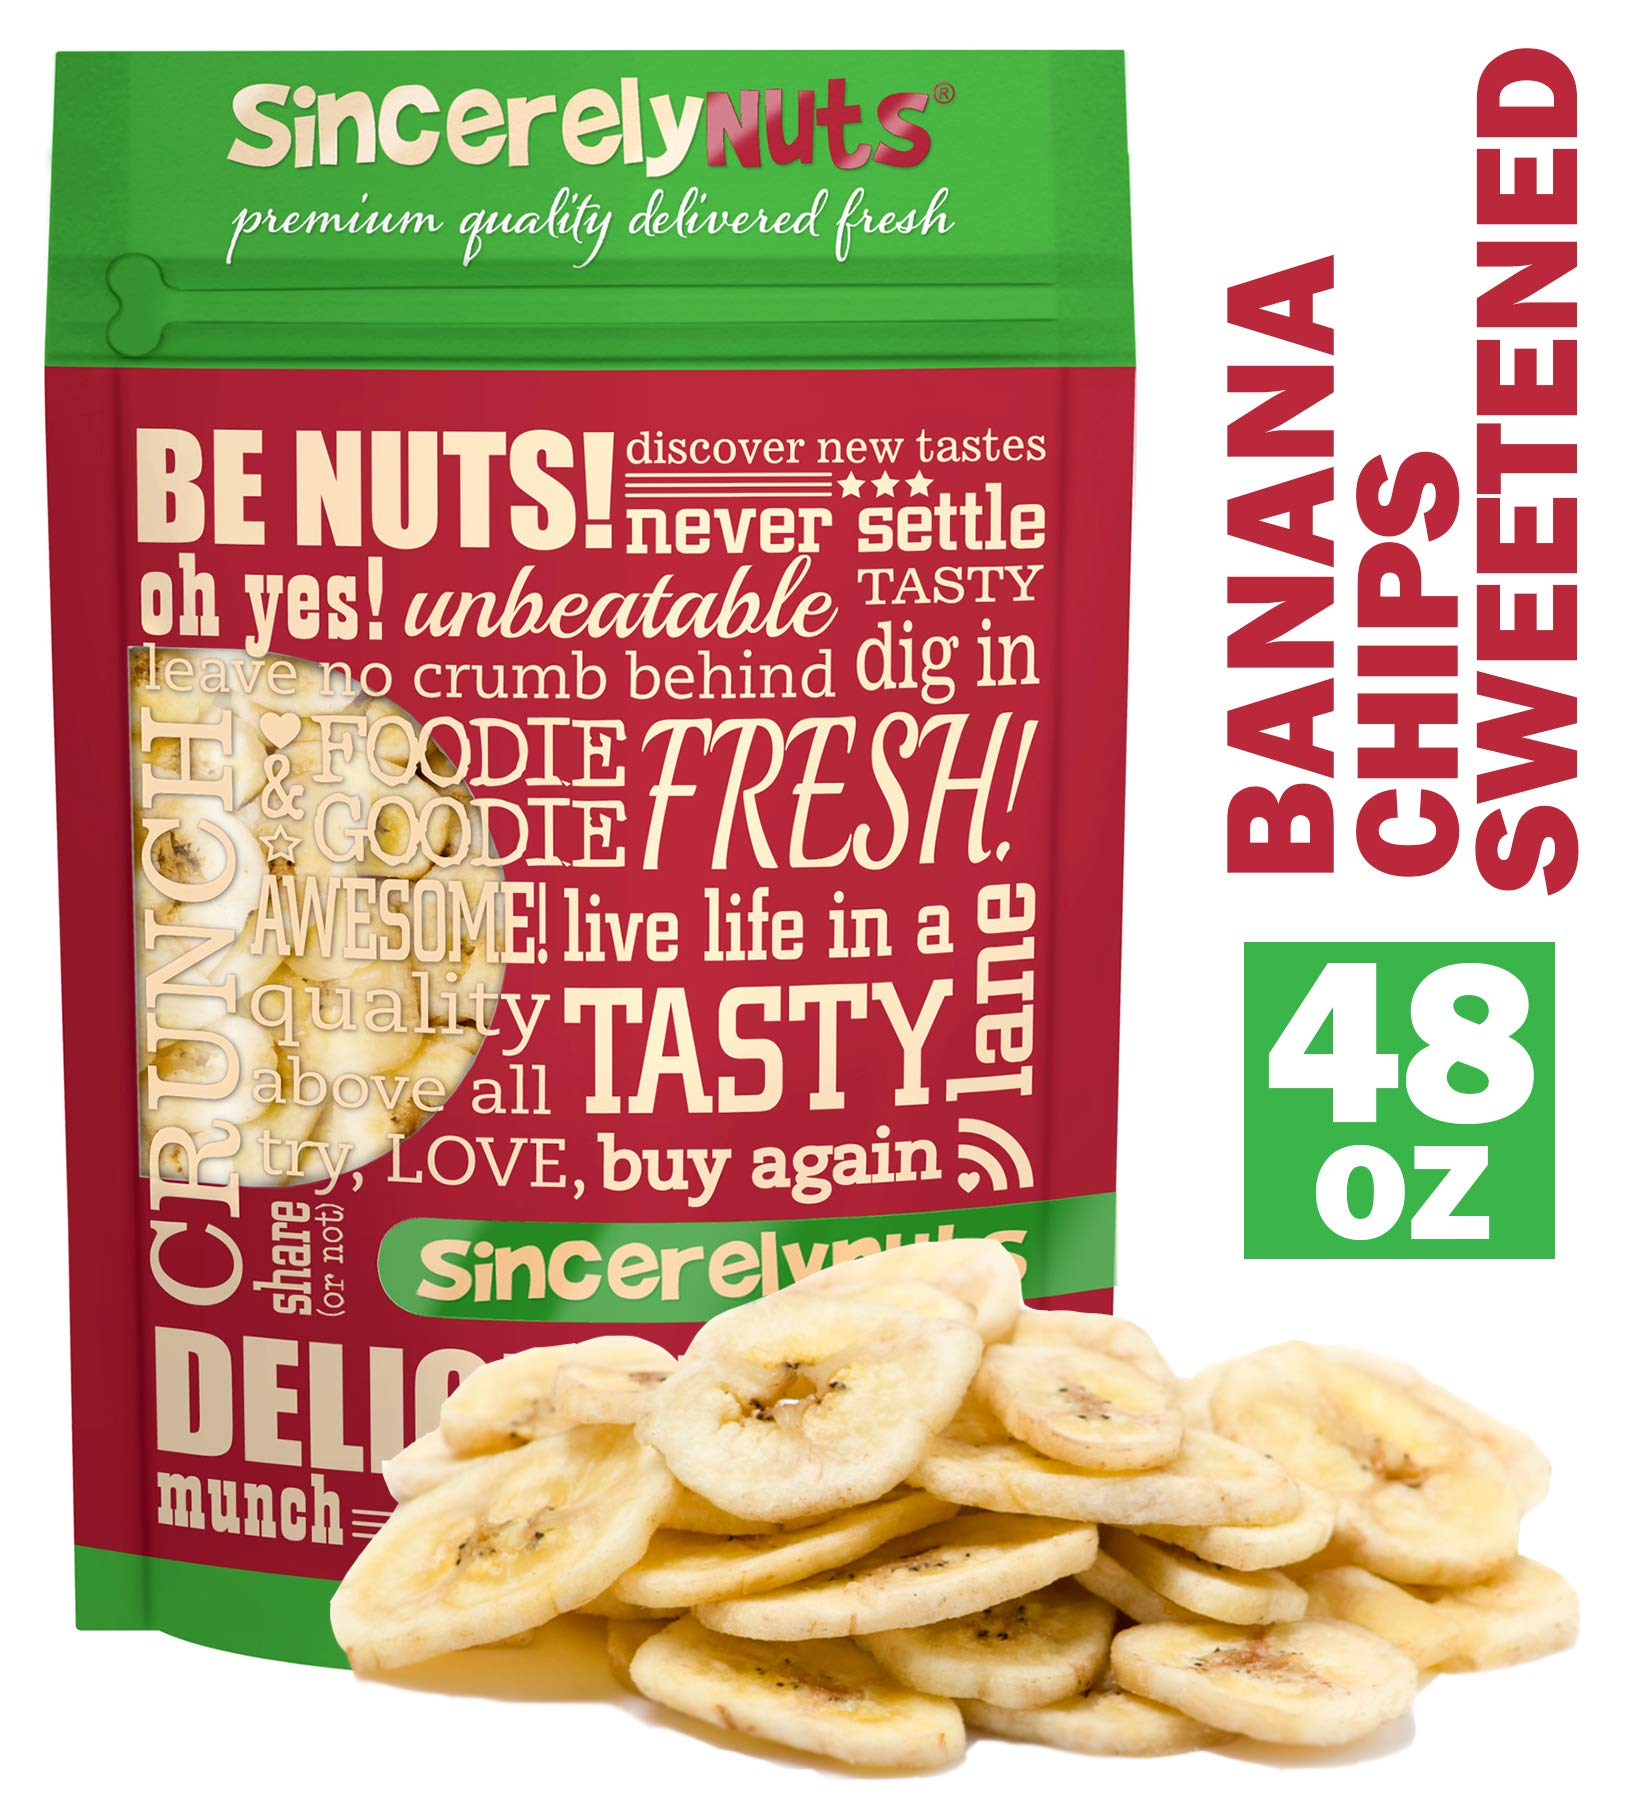 Sincerely Nuts Banana Chips (sweetened) (3 LB) - Gluten-Free Food, Vegan, and Kosher Snack-Healthier Alternative Sweet Treat-Same Banana Taste with Crunch Plus Added Taste-Natural Energy